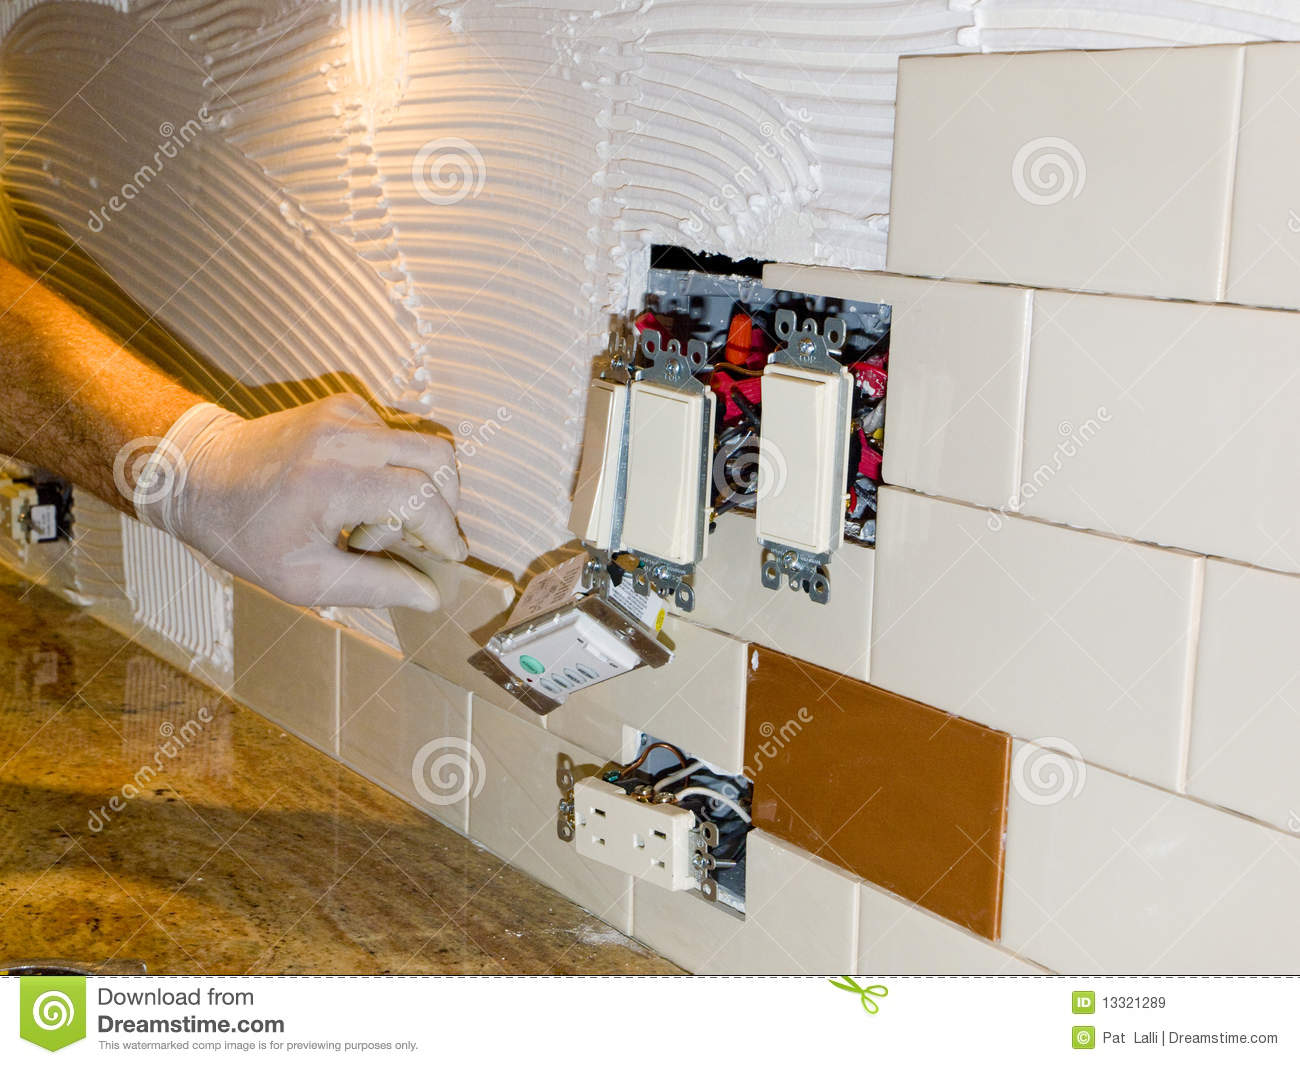 How To Install Kitchen Ceramic Tile Wall